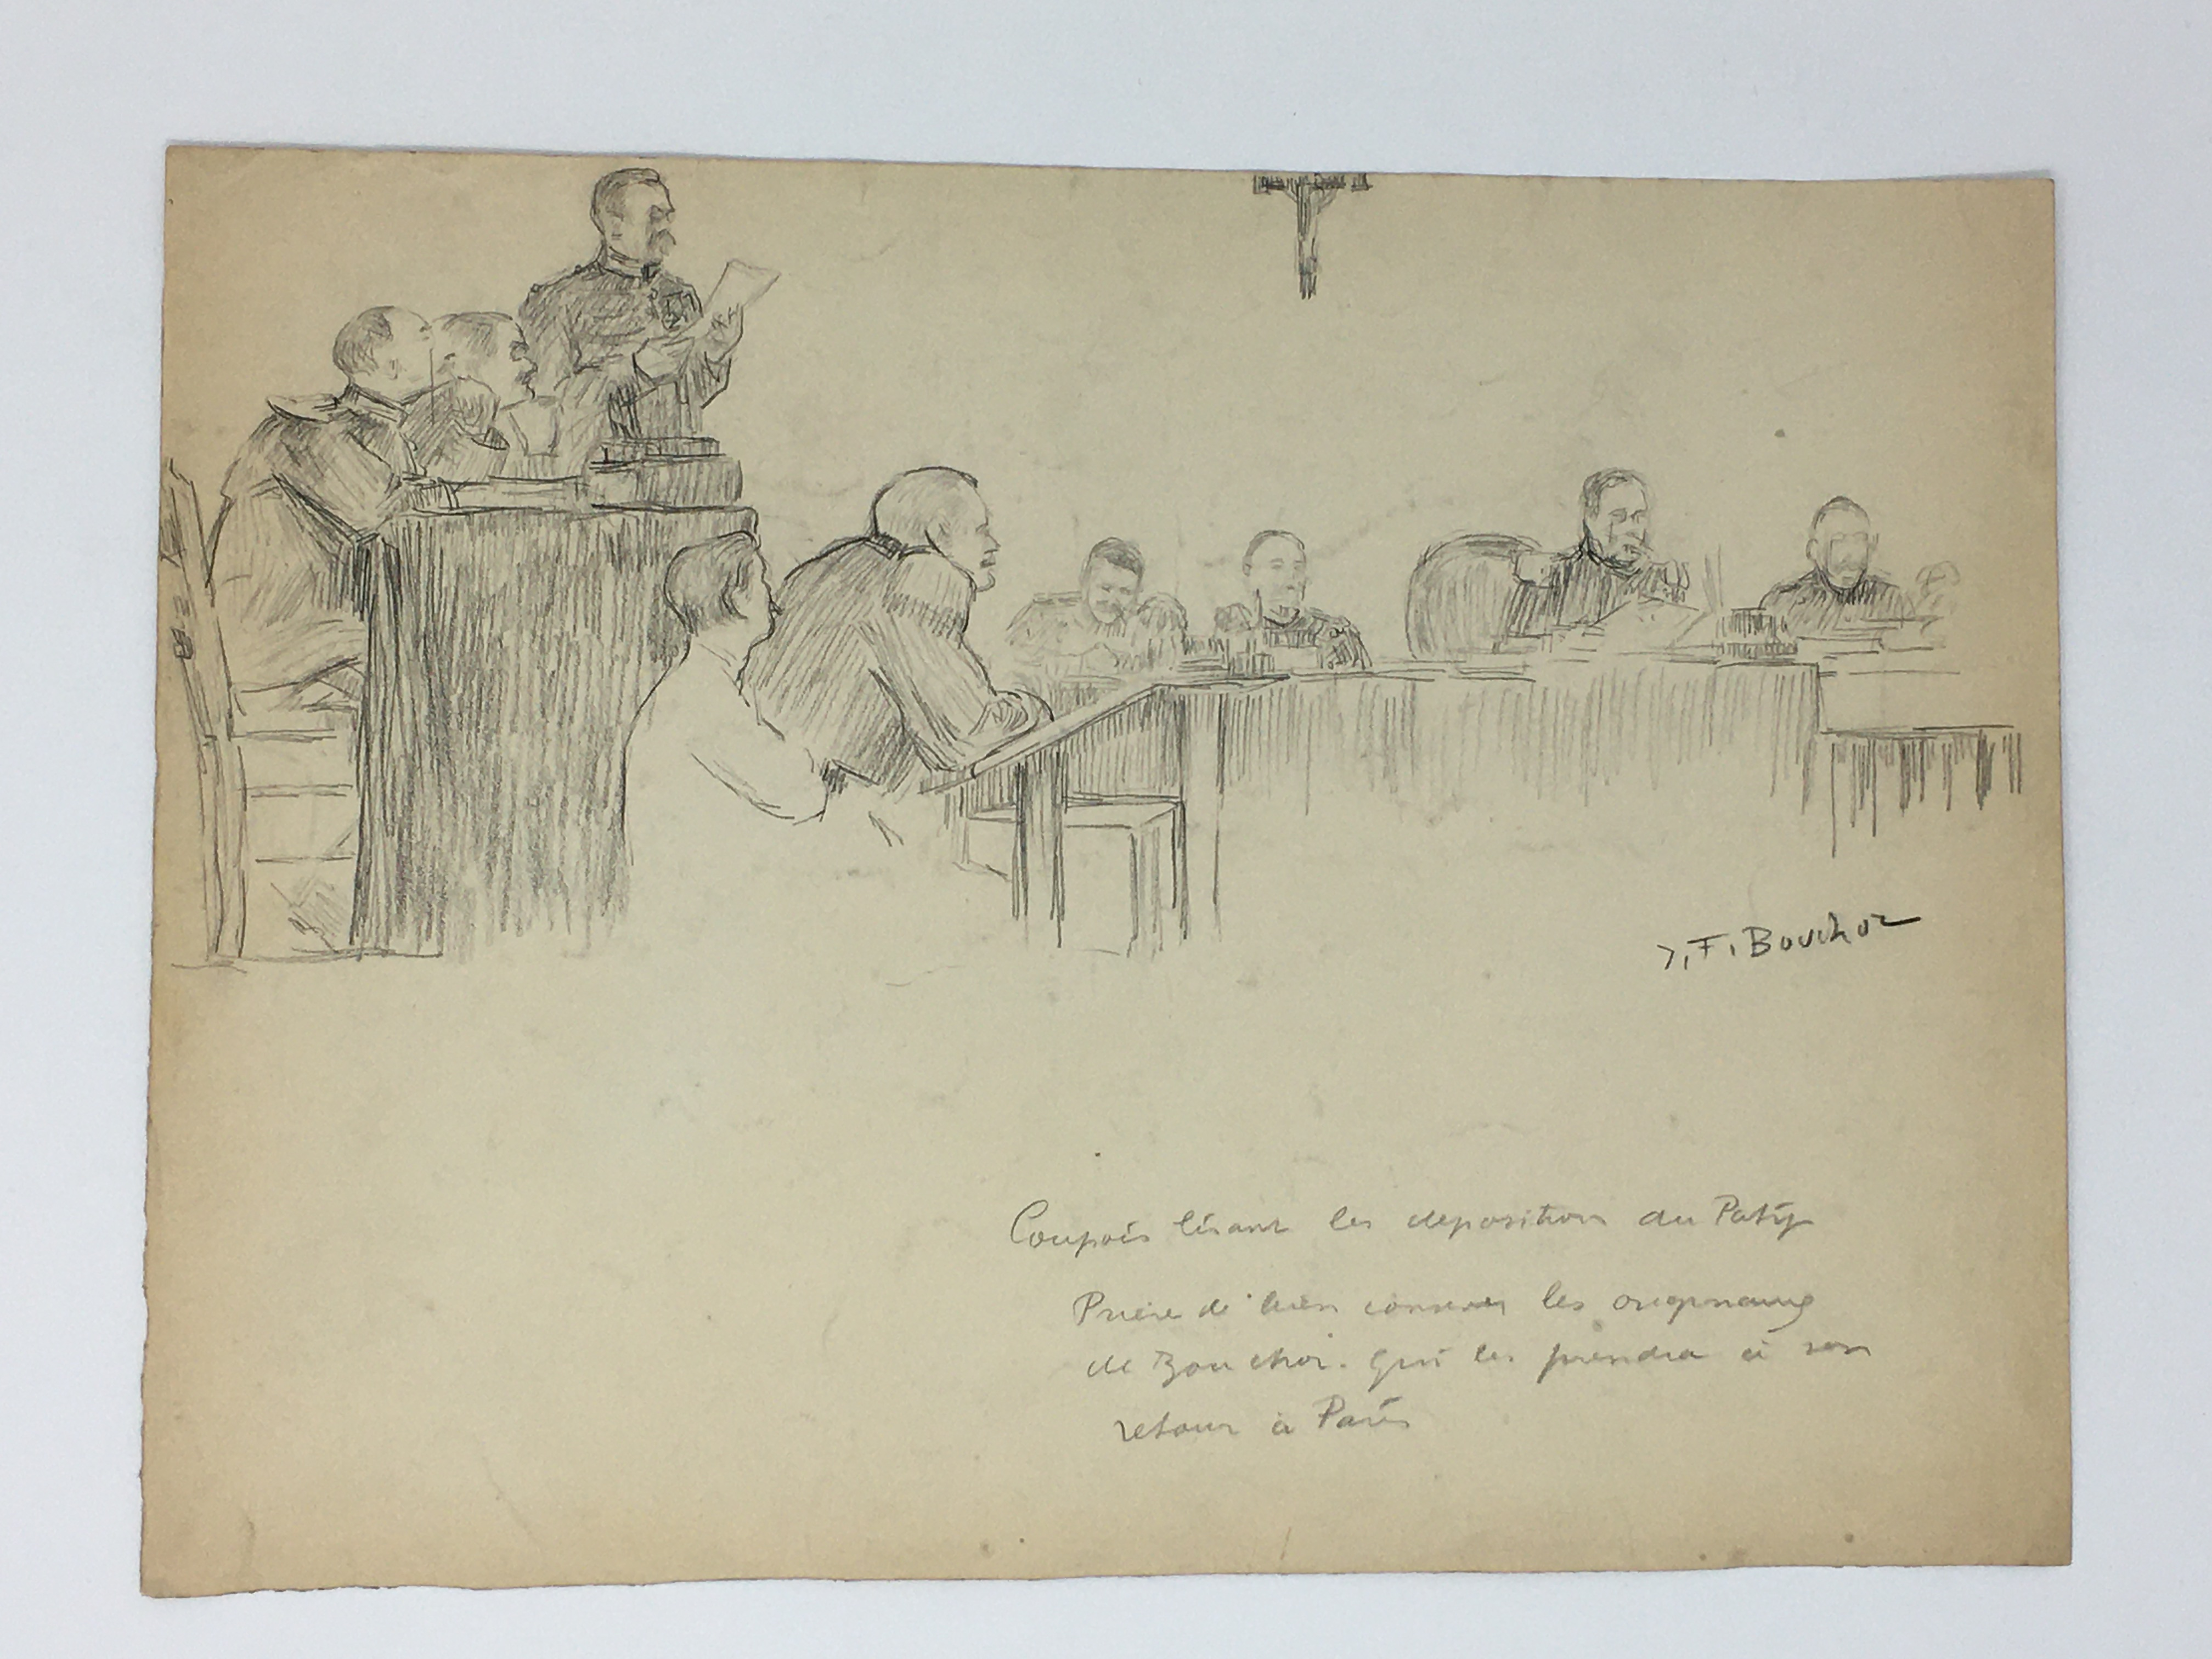 J'Accuse Newspaper, Emile Zola Quote, Signed Dreyfus Portrait, Rare Trial Drawings & Schwartzkoppen - Image 29 of 74